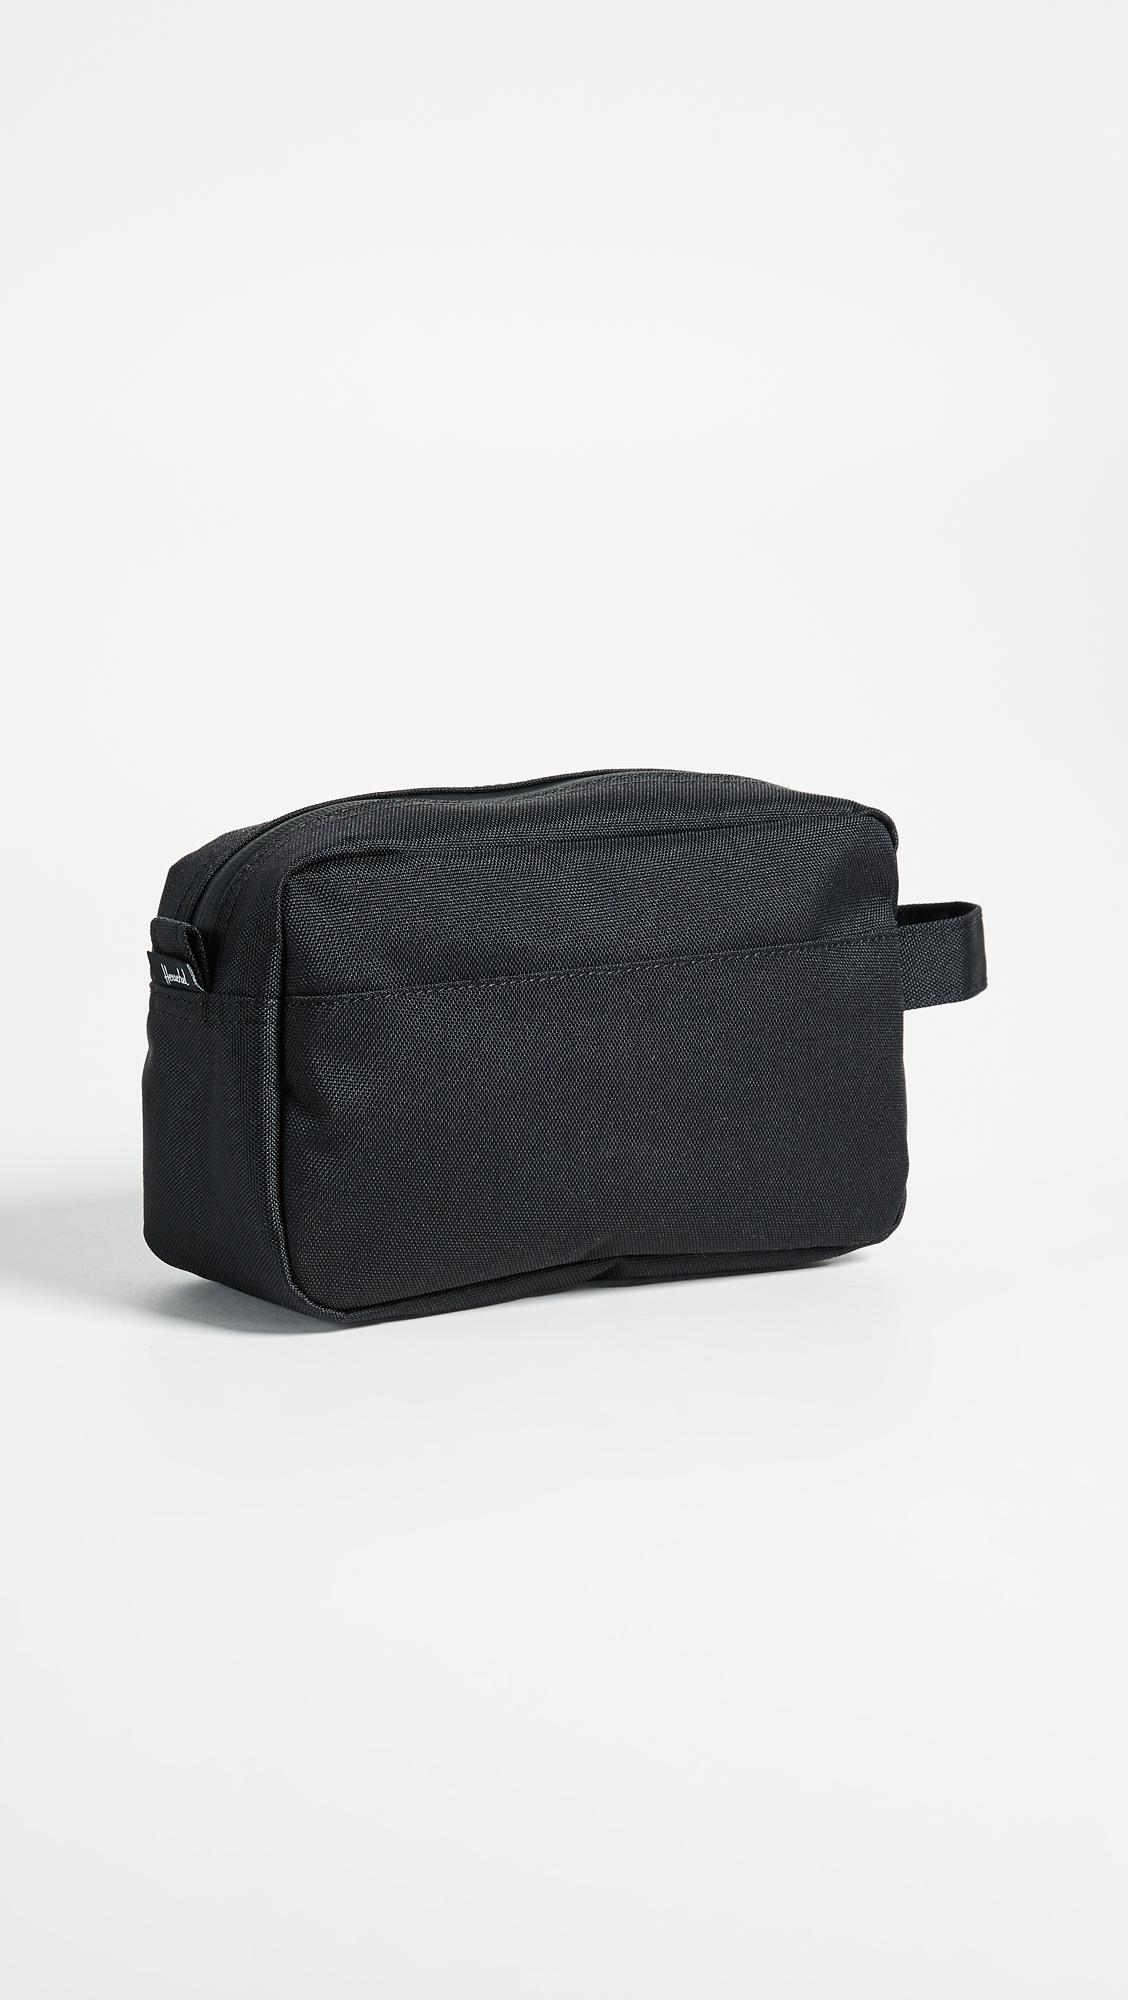 afab23217274 Lyst - Herschel Supply Co. Chapter Carry On Travel Kit in Black